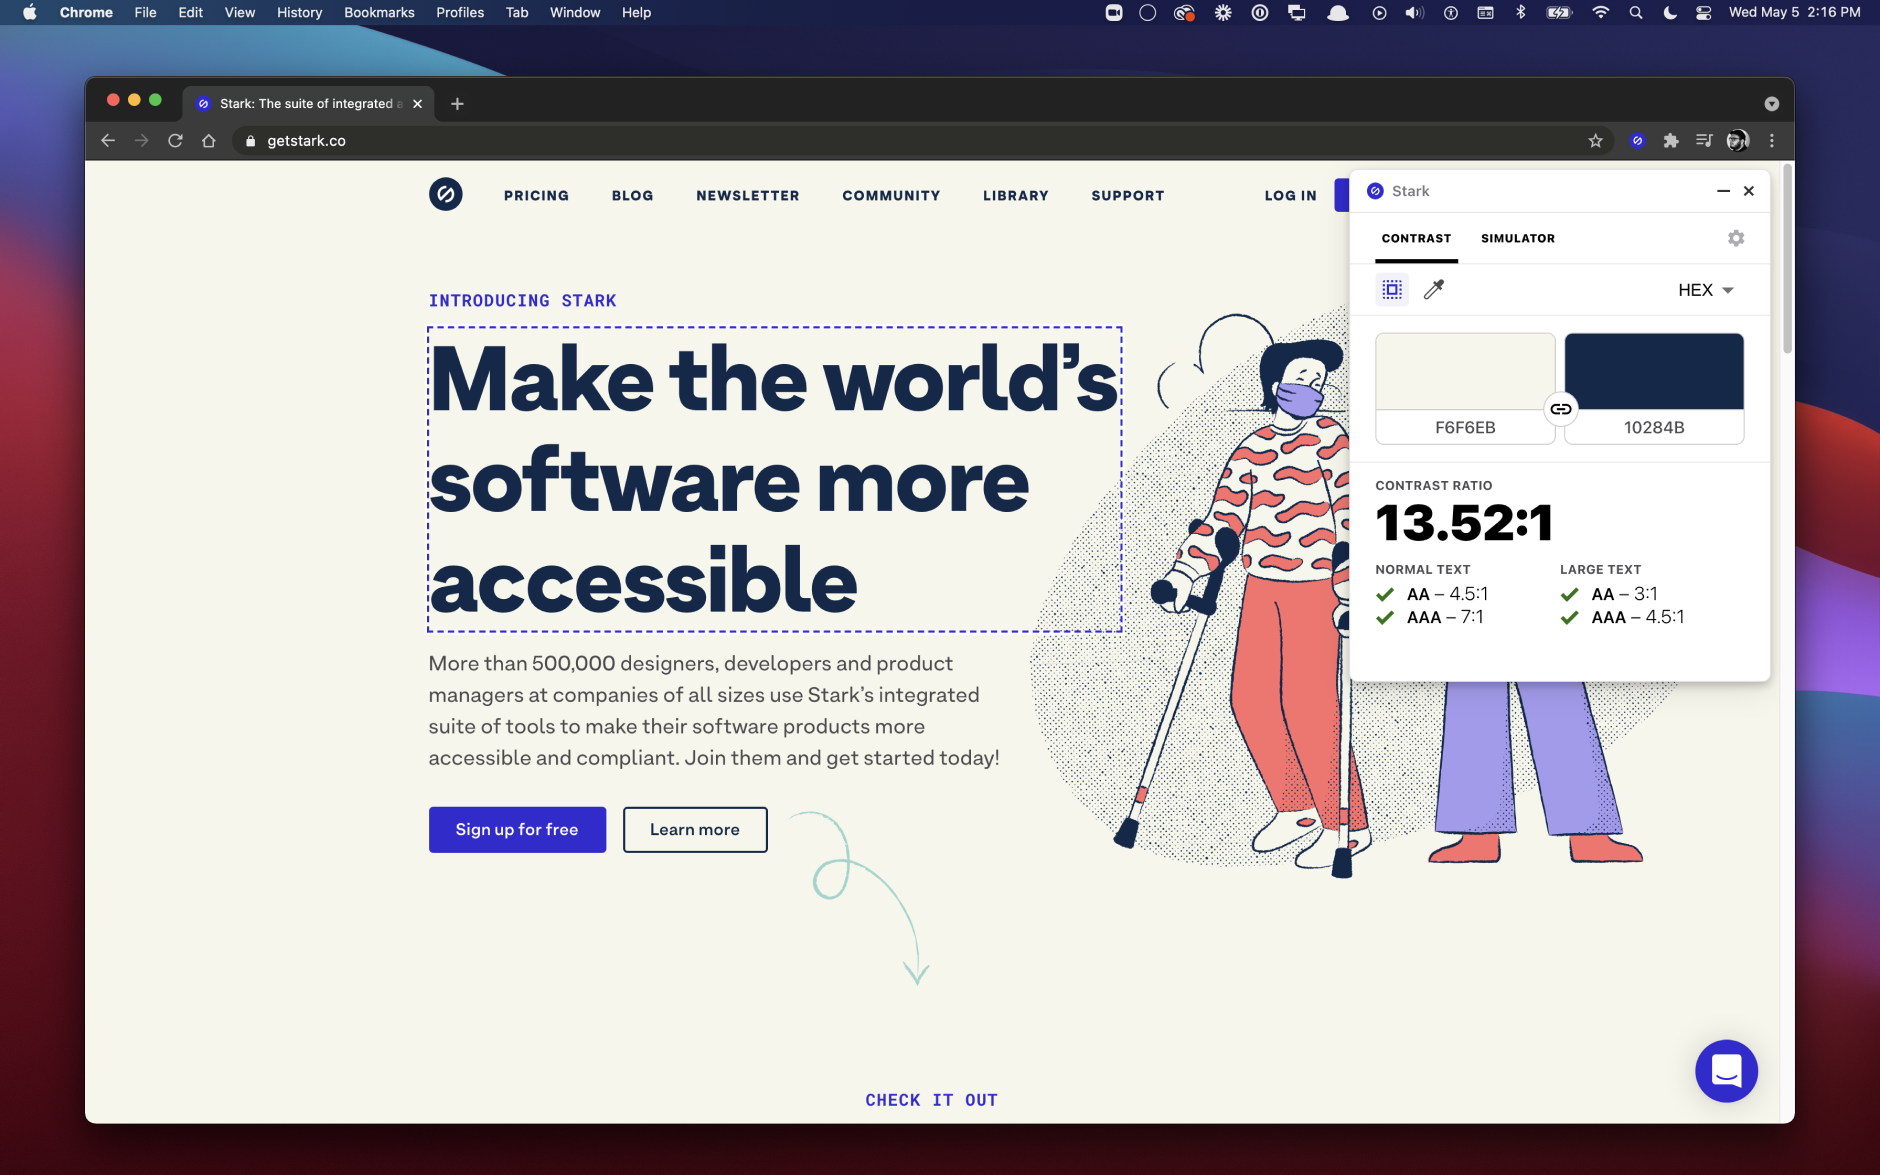 stark accessibility tools chrome extension